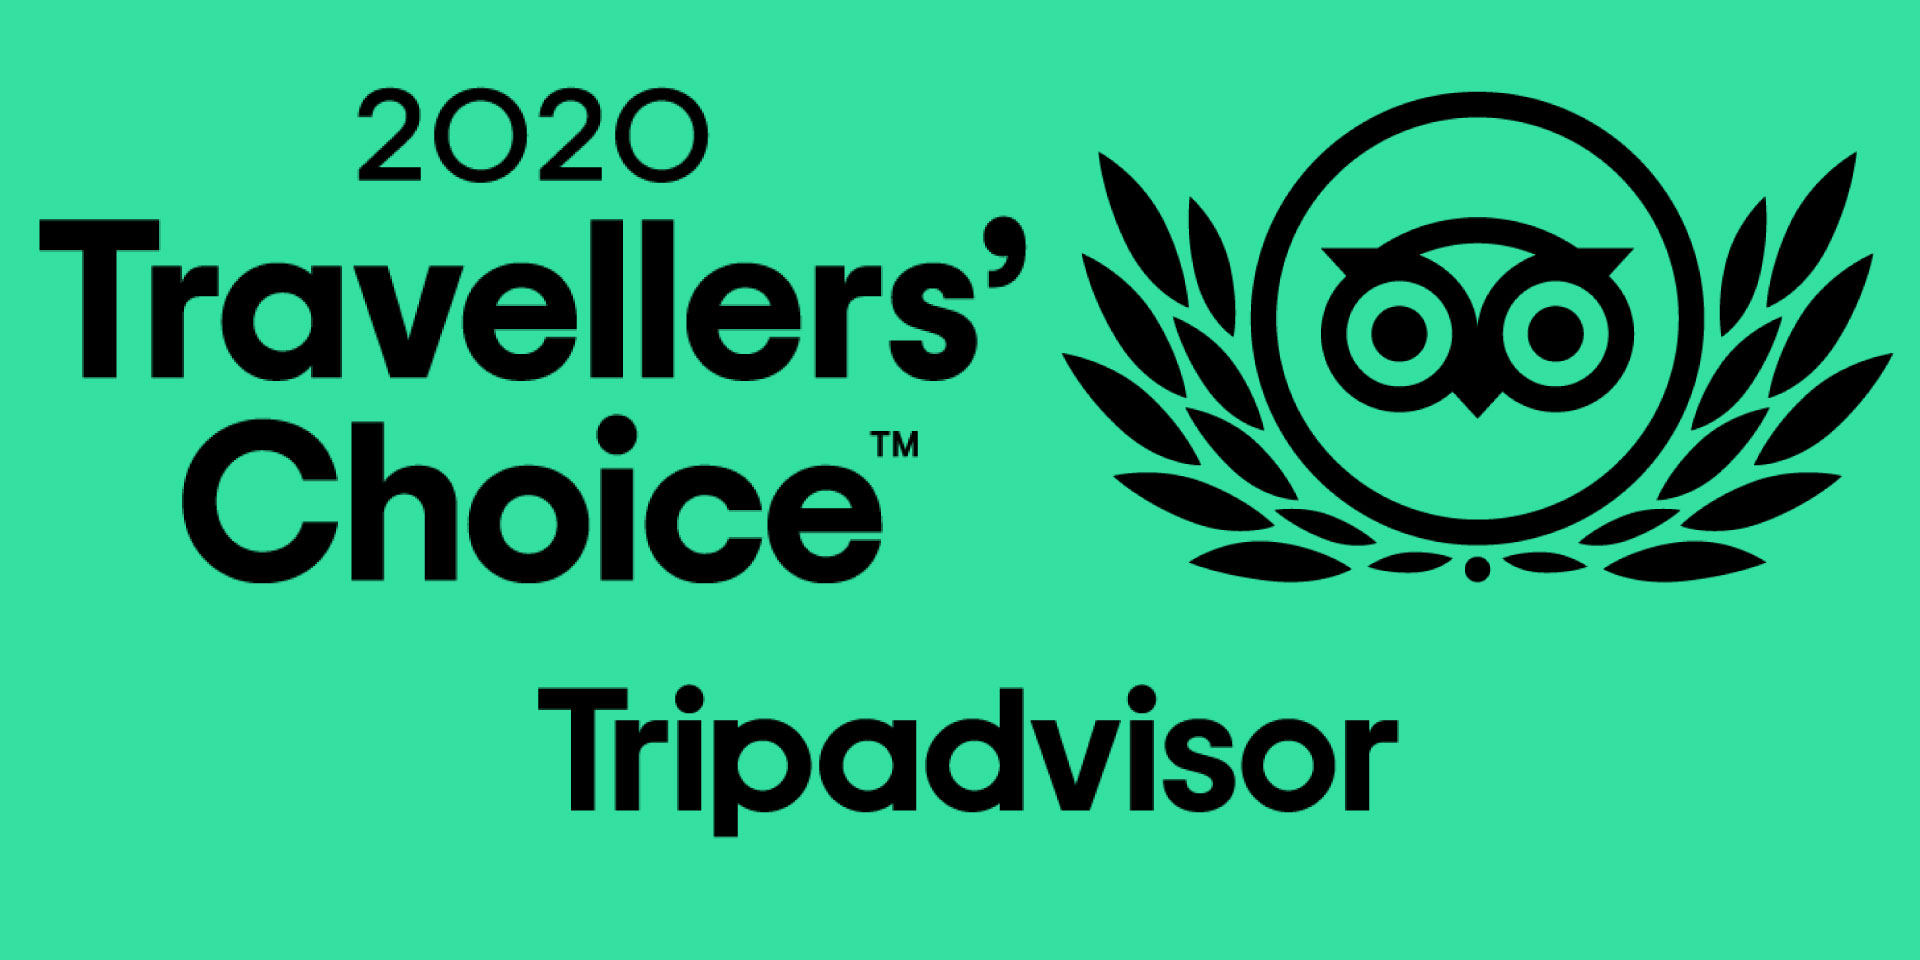 Eden Camp Modern History Theme Museum Wins 2020 Tripadvisor Travellers' Choice Award for Tourist Attractions